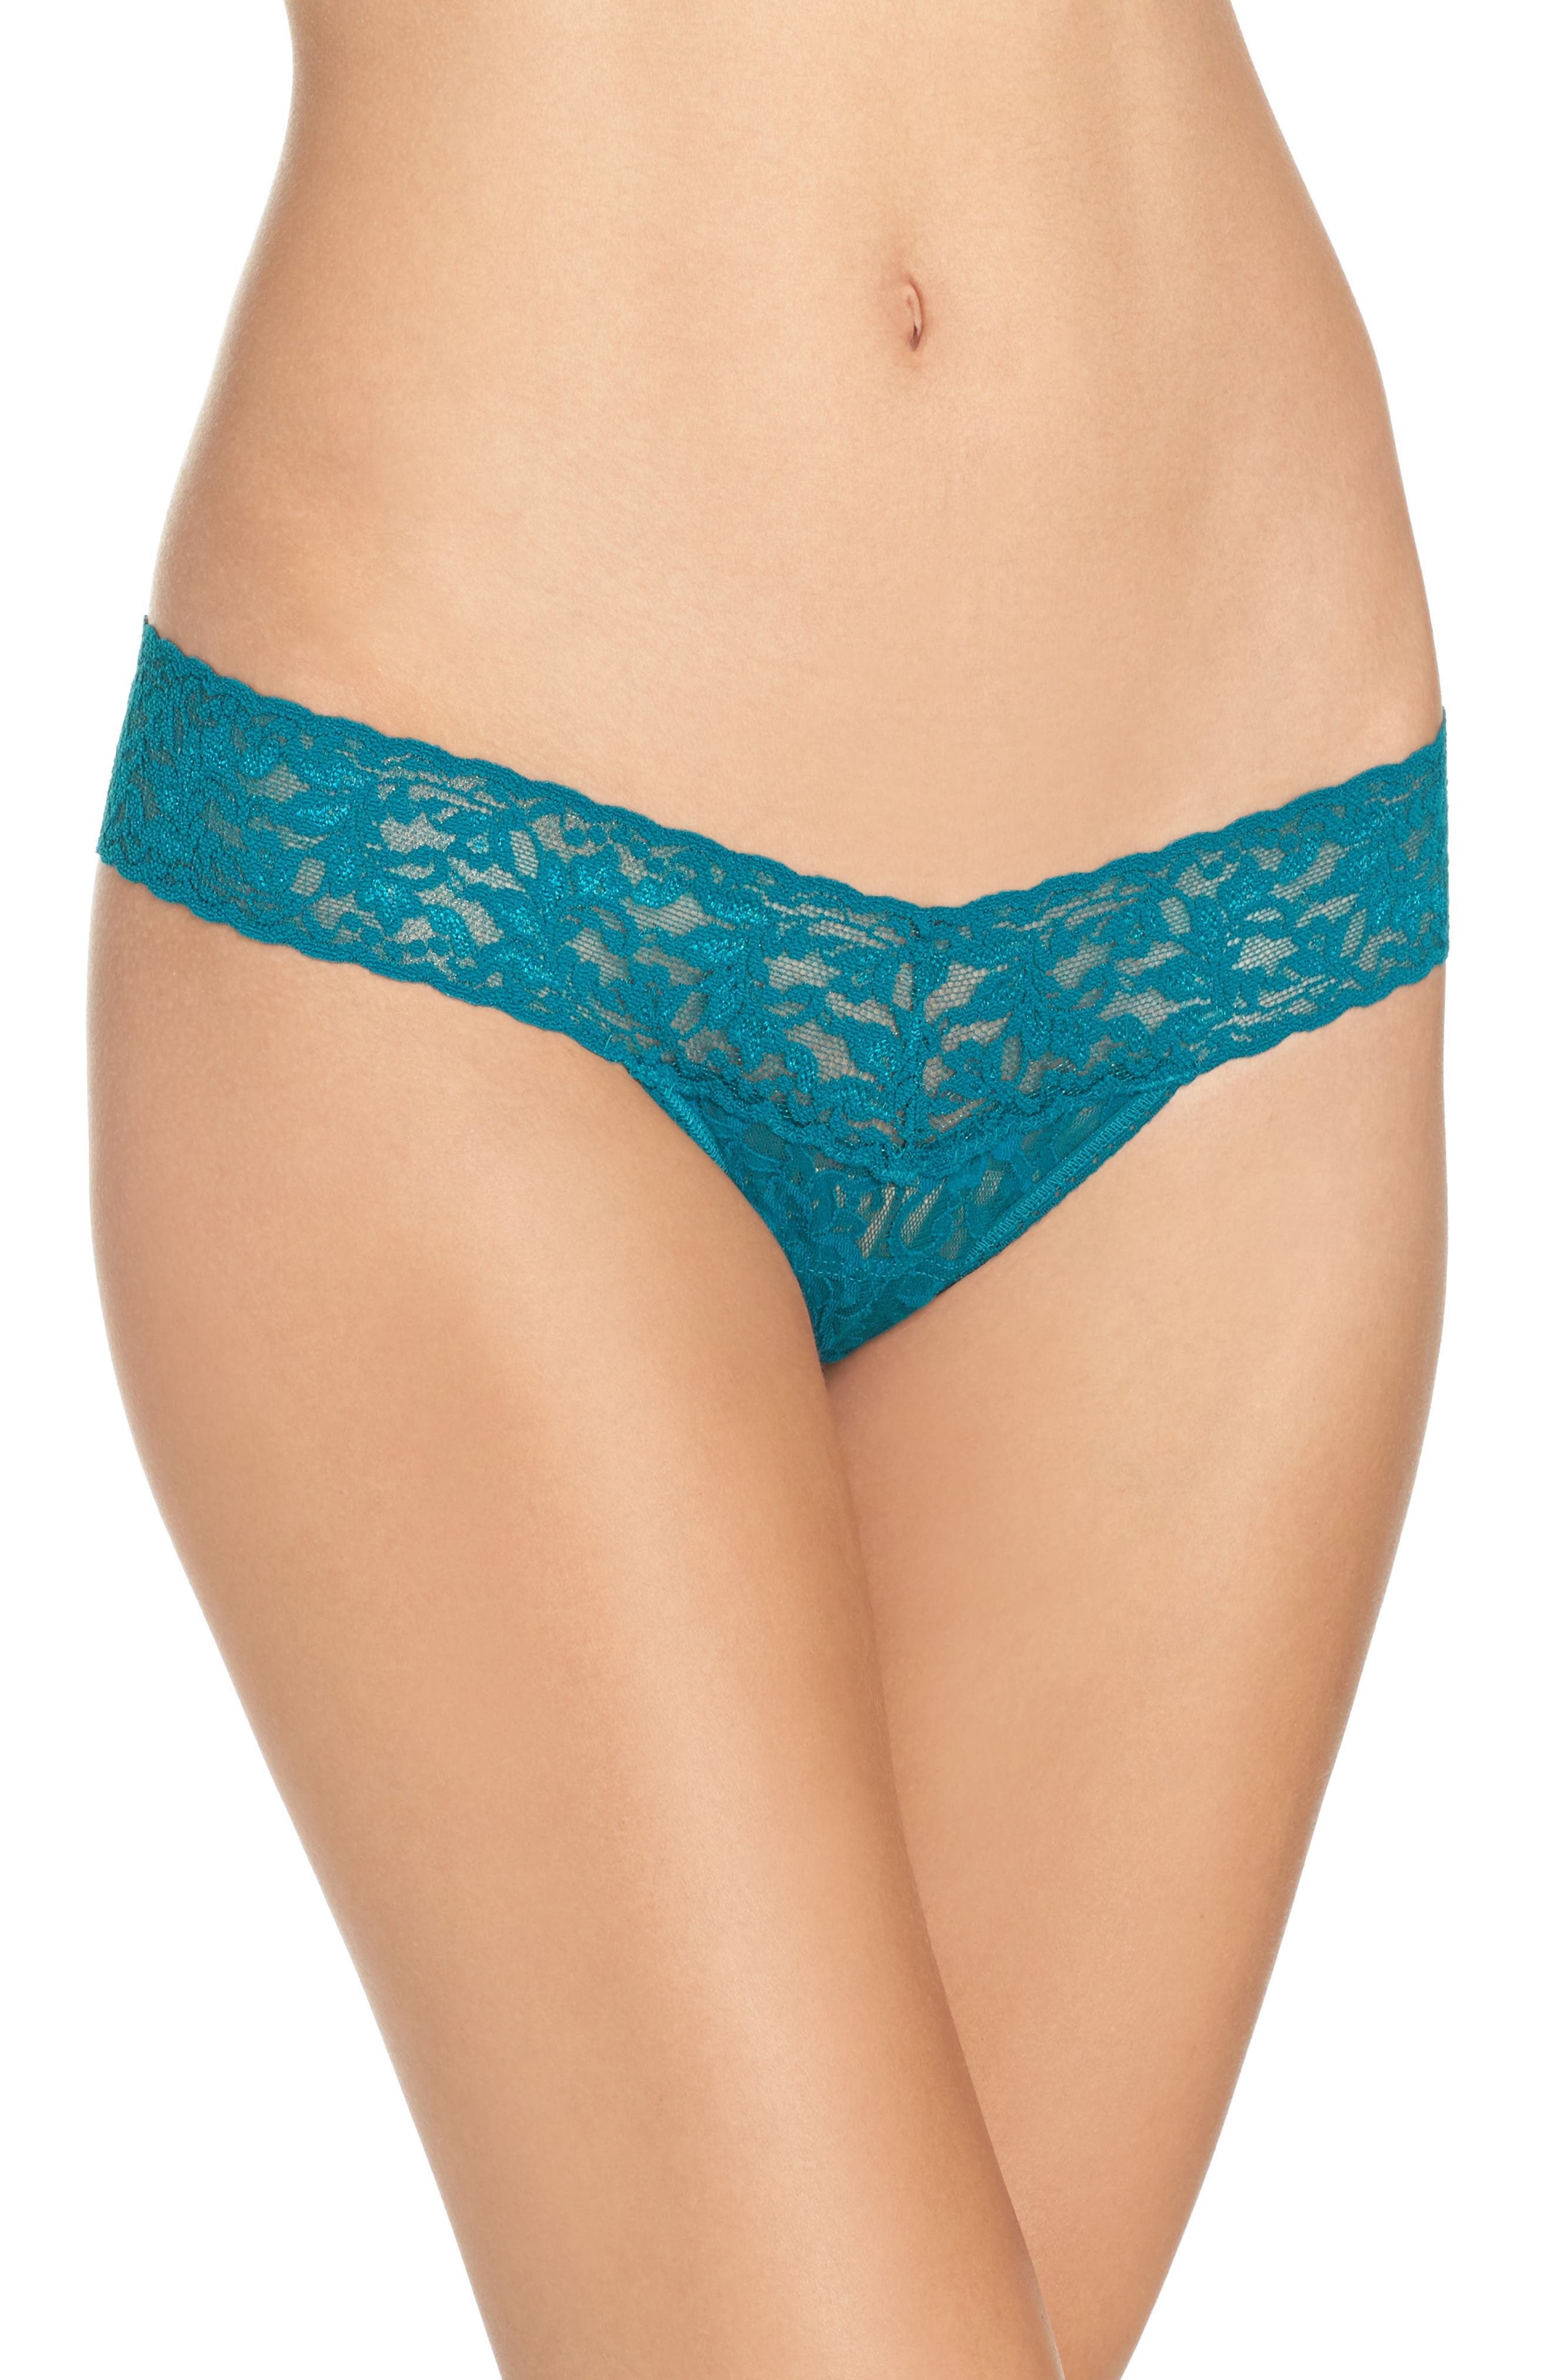 Main Image - Hanky Panky Signature Lace Low Rise Thong